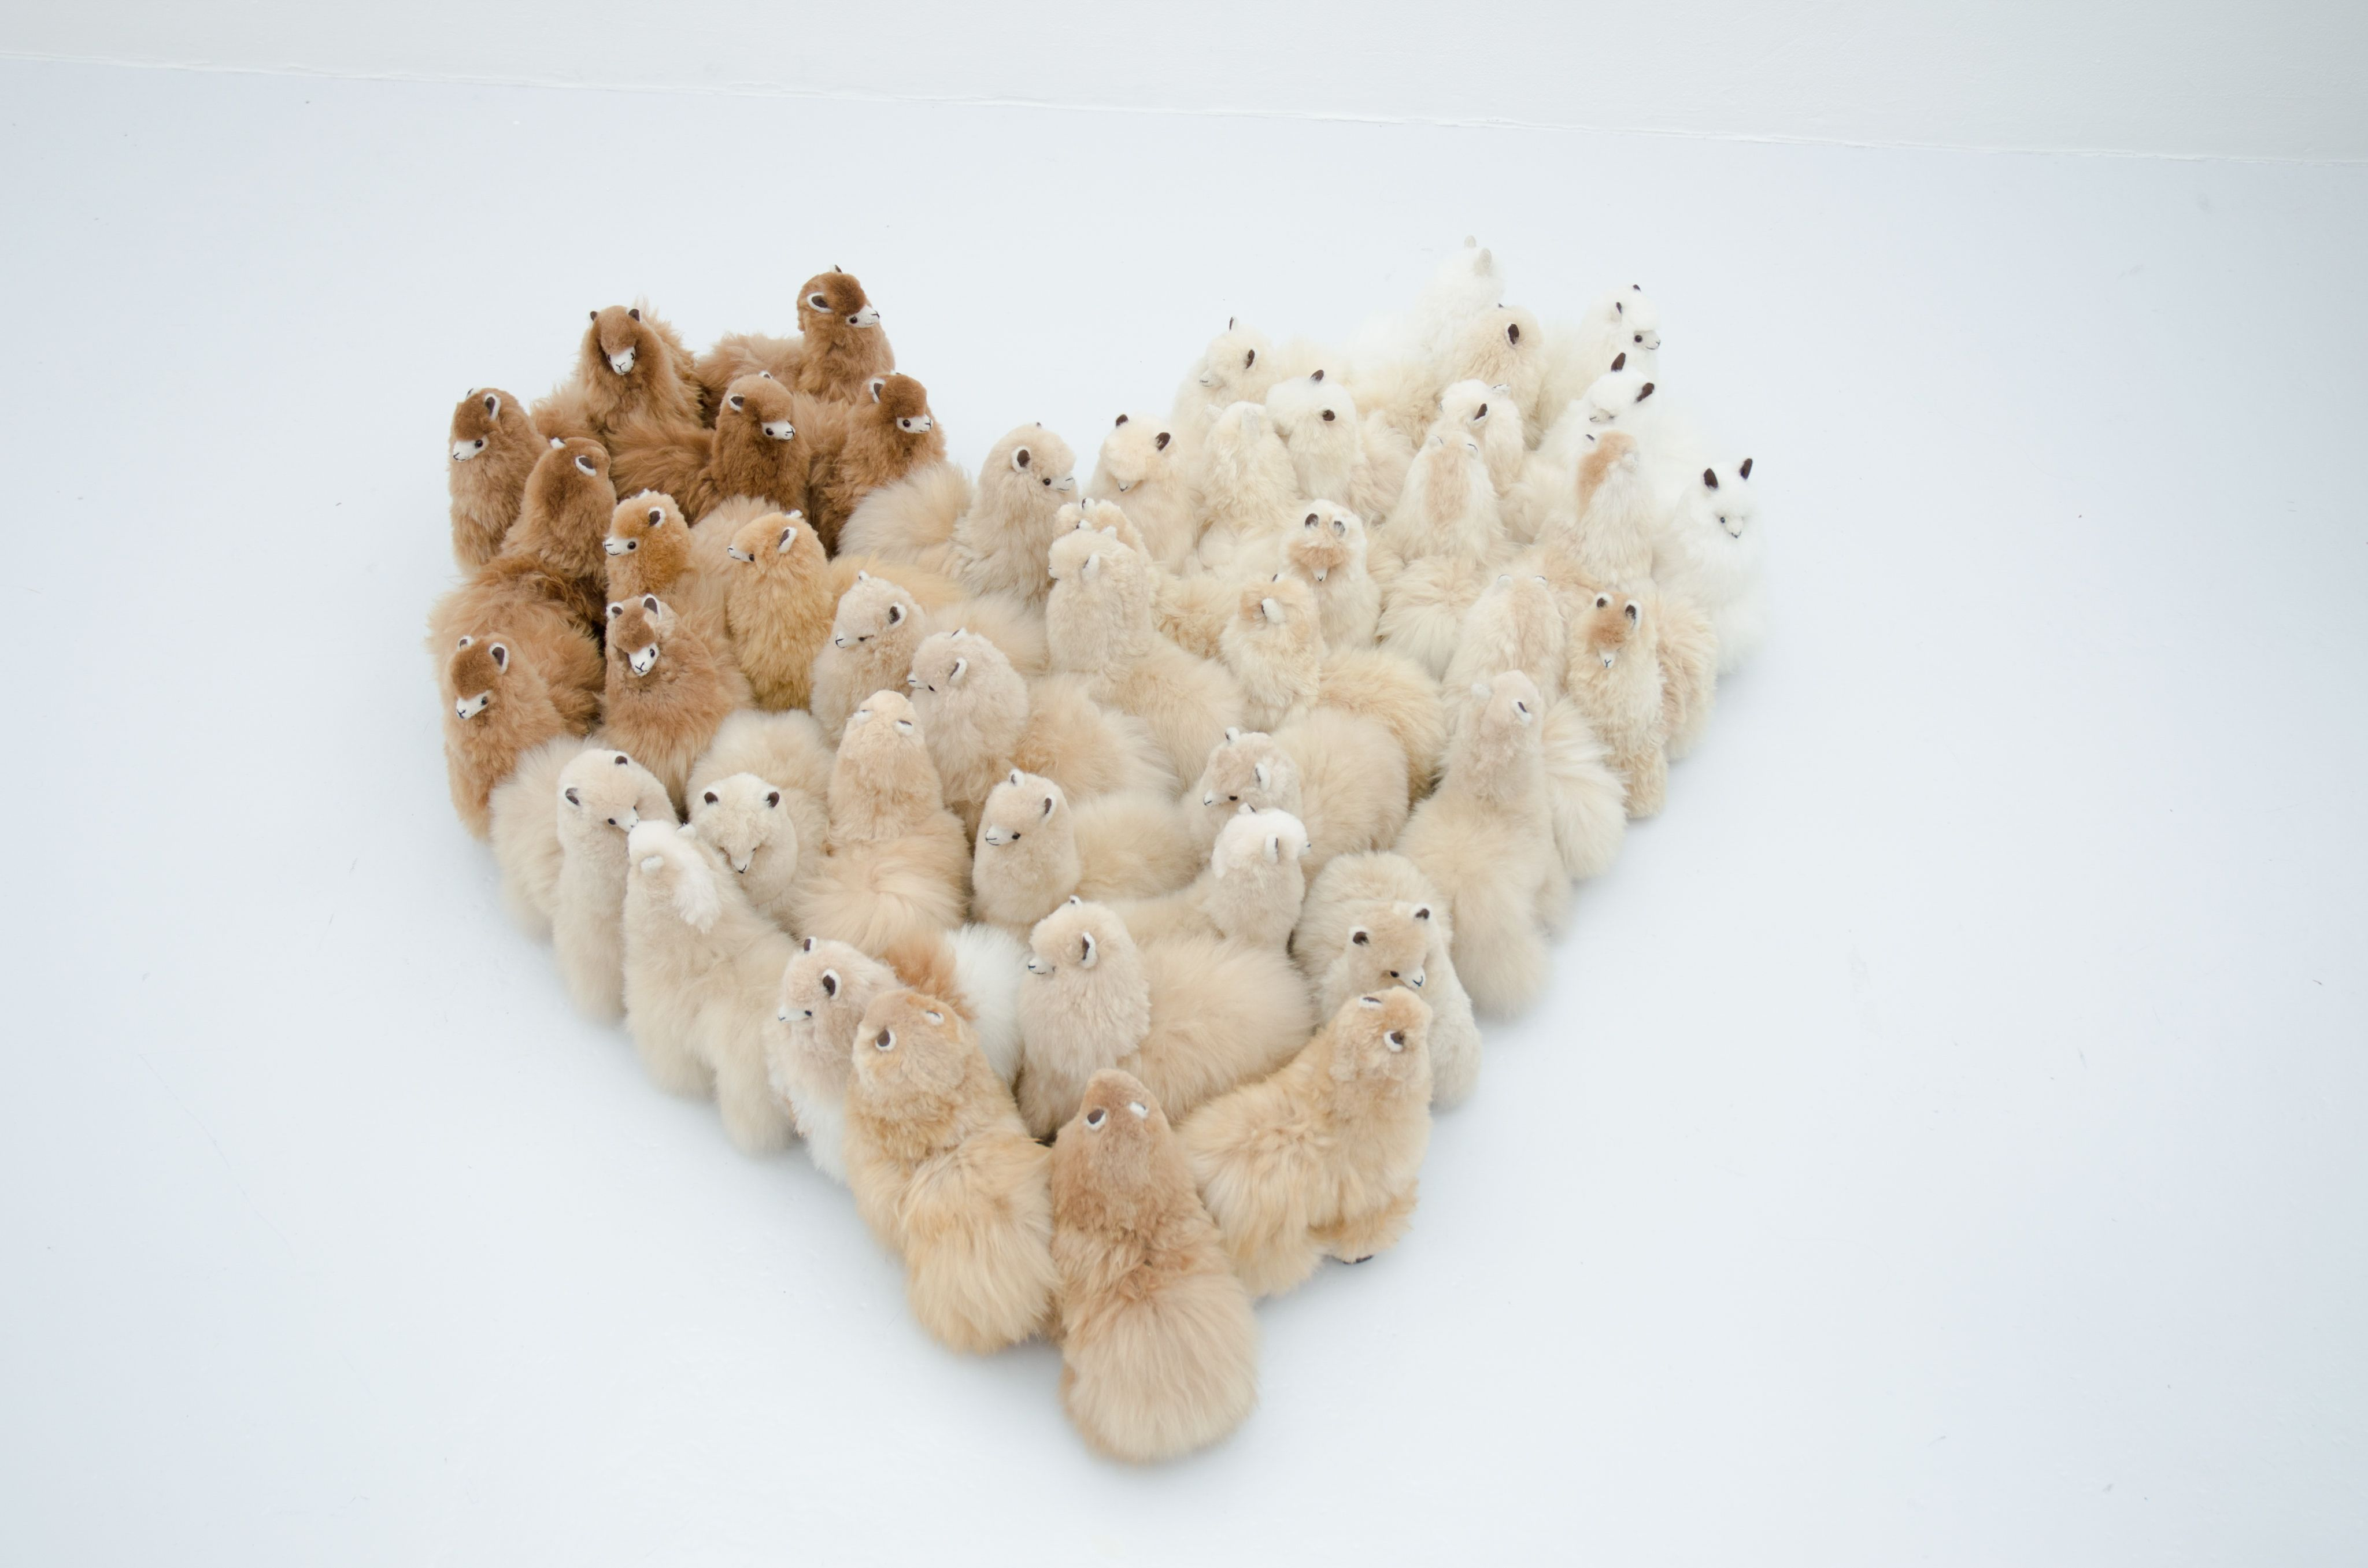 These handmade, fair trade and fluffy alpaca toys are waiting for you to cuddle them! You do not realize you need one until you get one. Check them out on www.alpacadoro.com